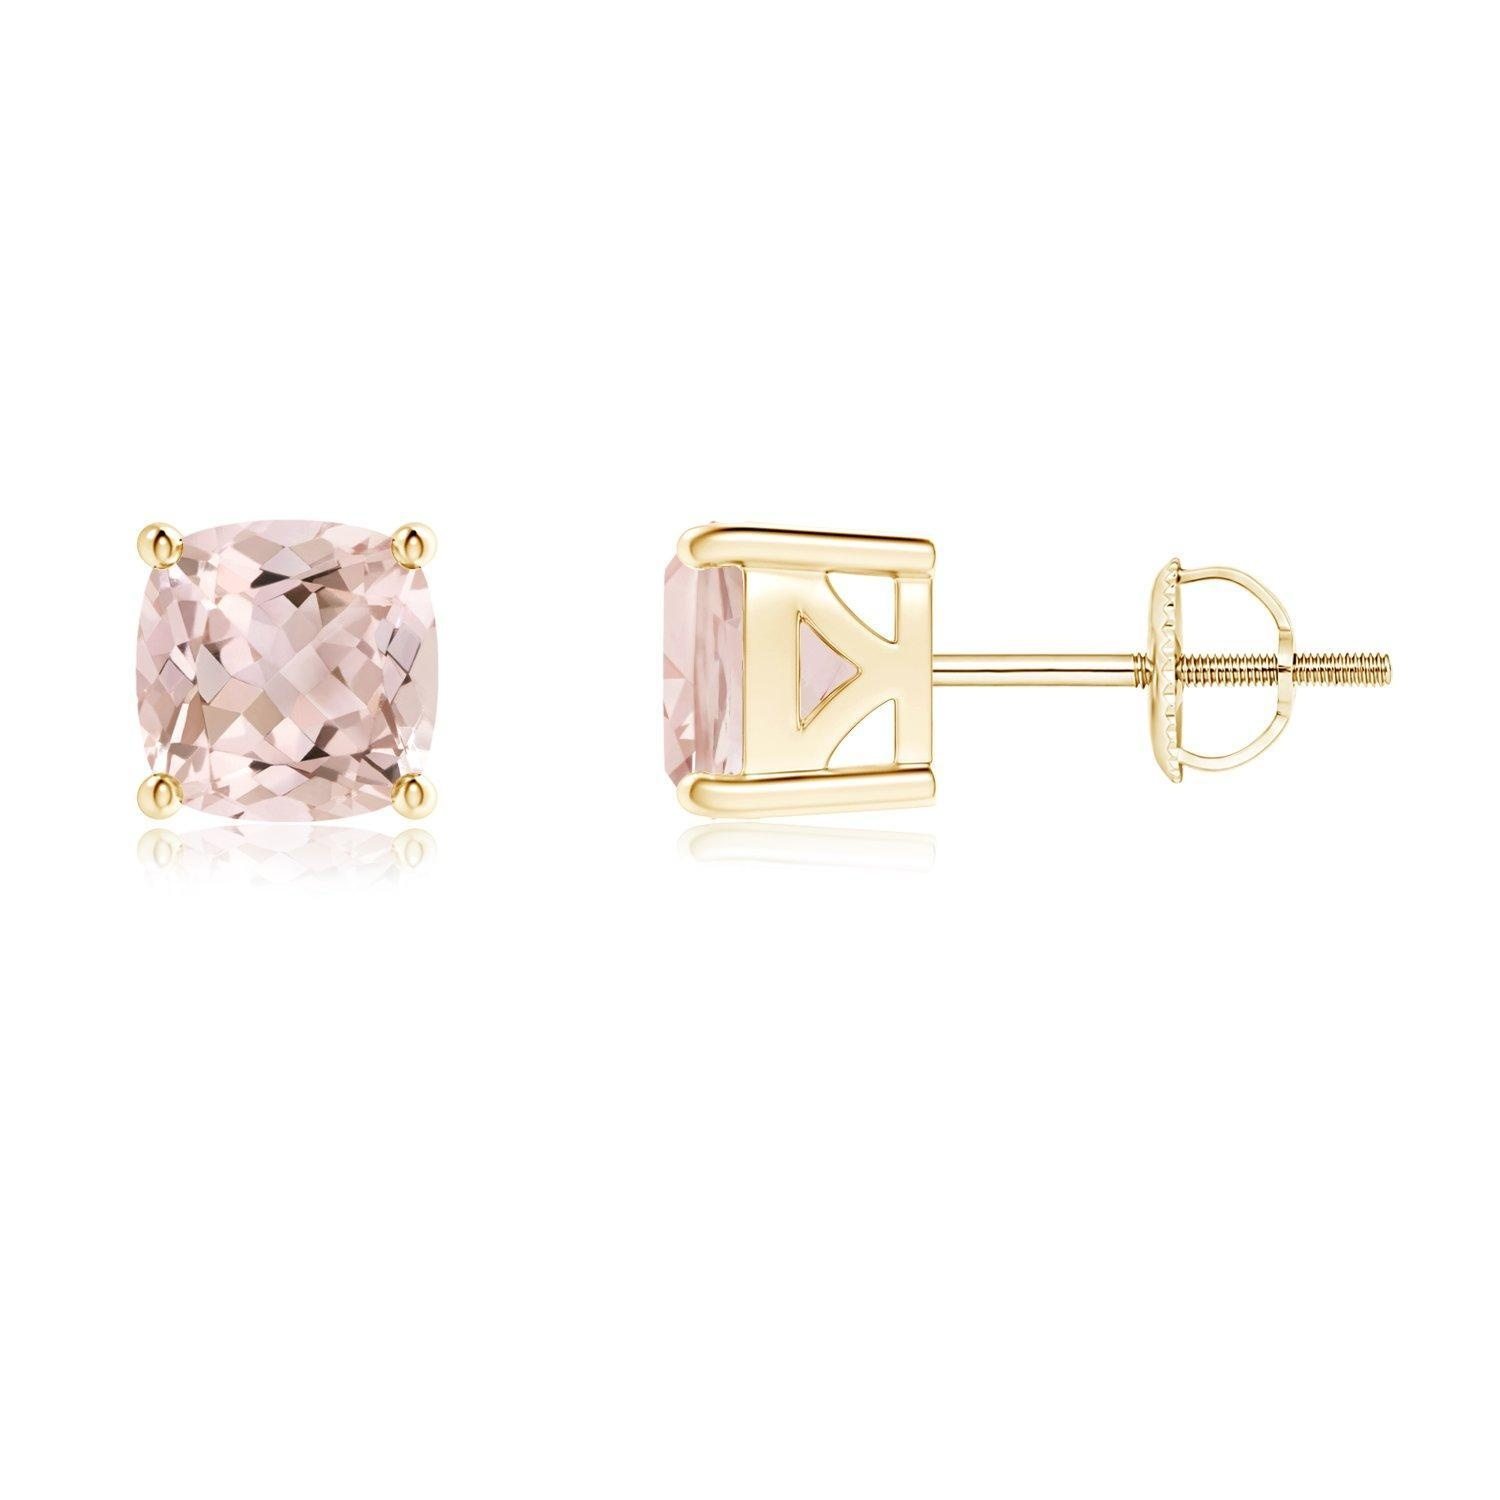 Classic Cushion Cut Morganite Stud Earrings With 4 Prong Basket Setting In 14k Yellow Gold 5mm Morganite